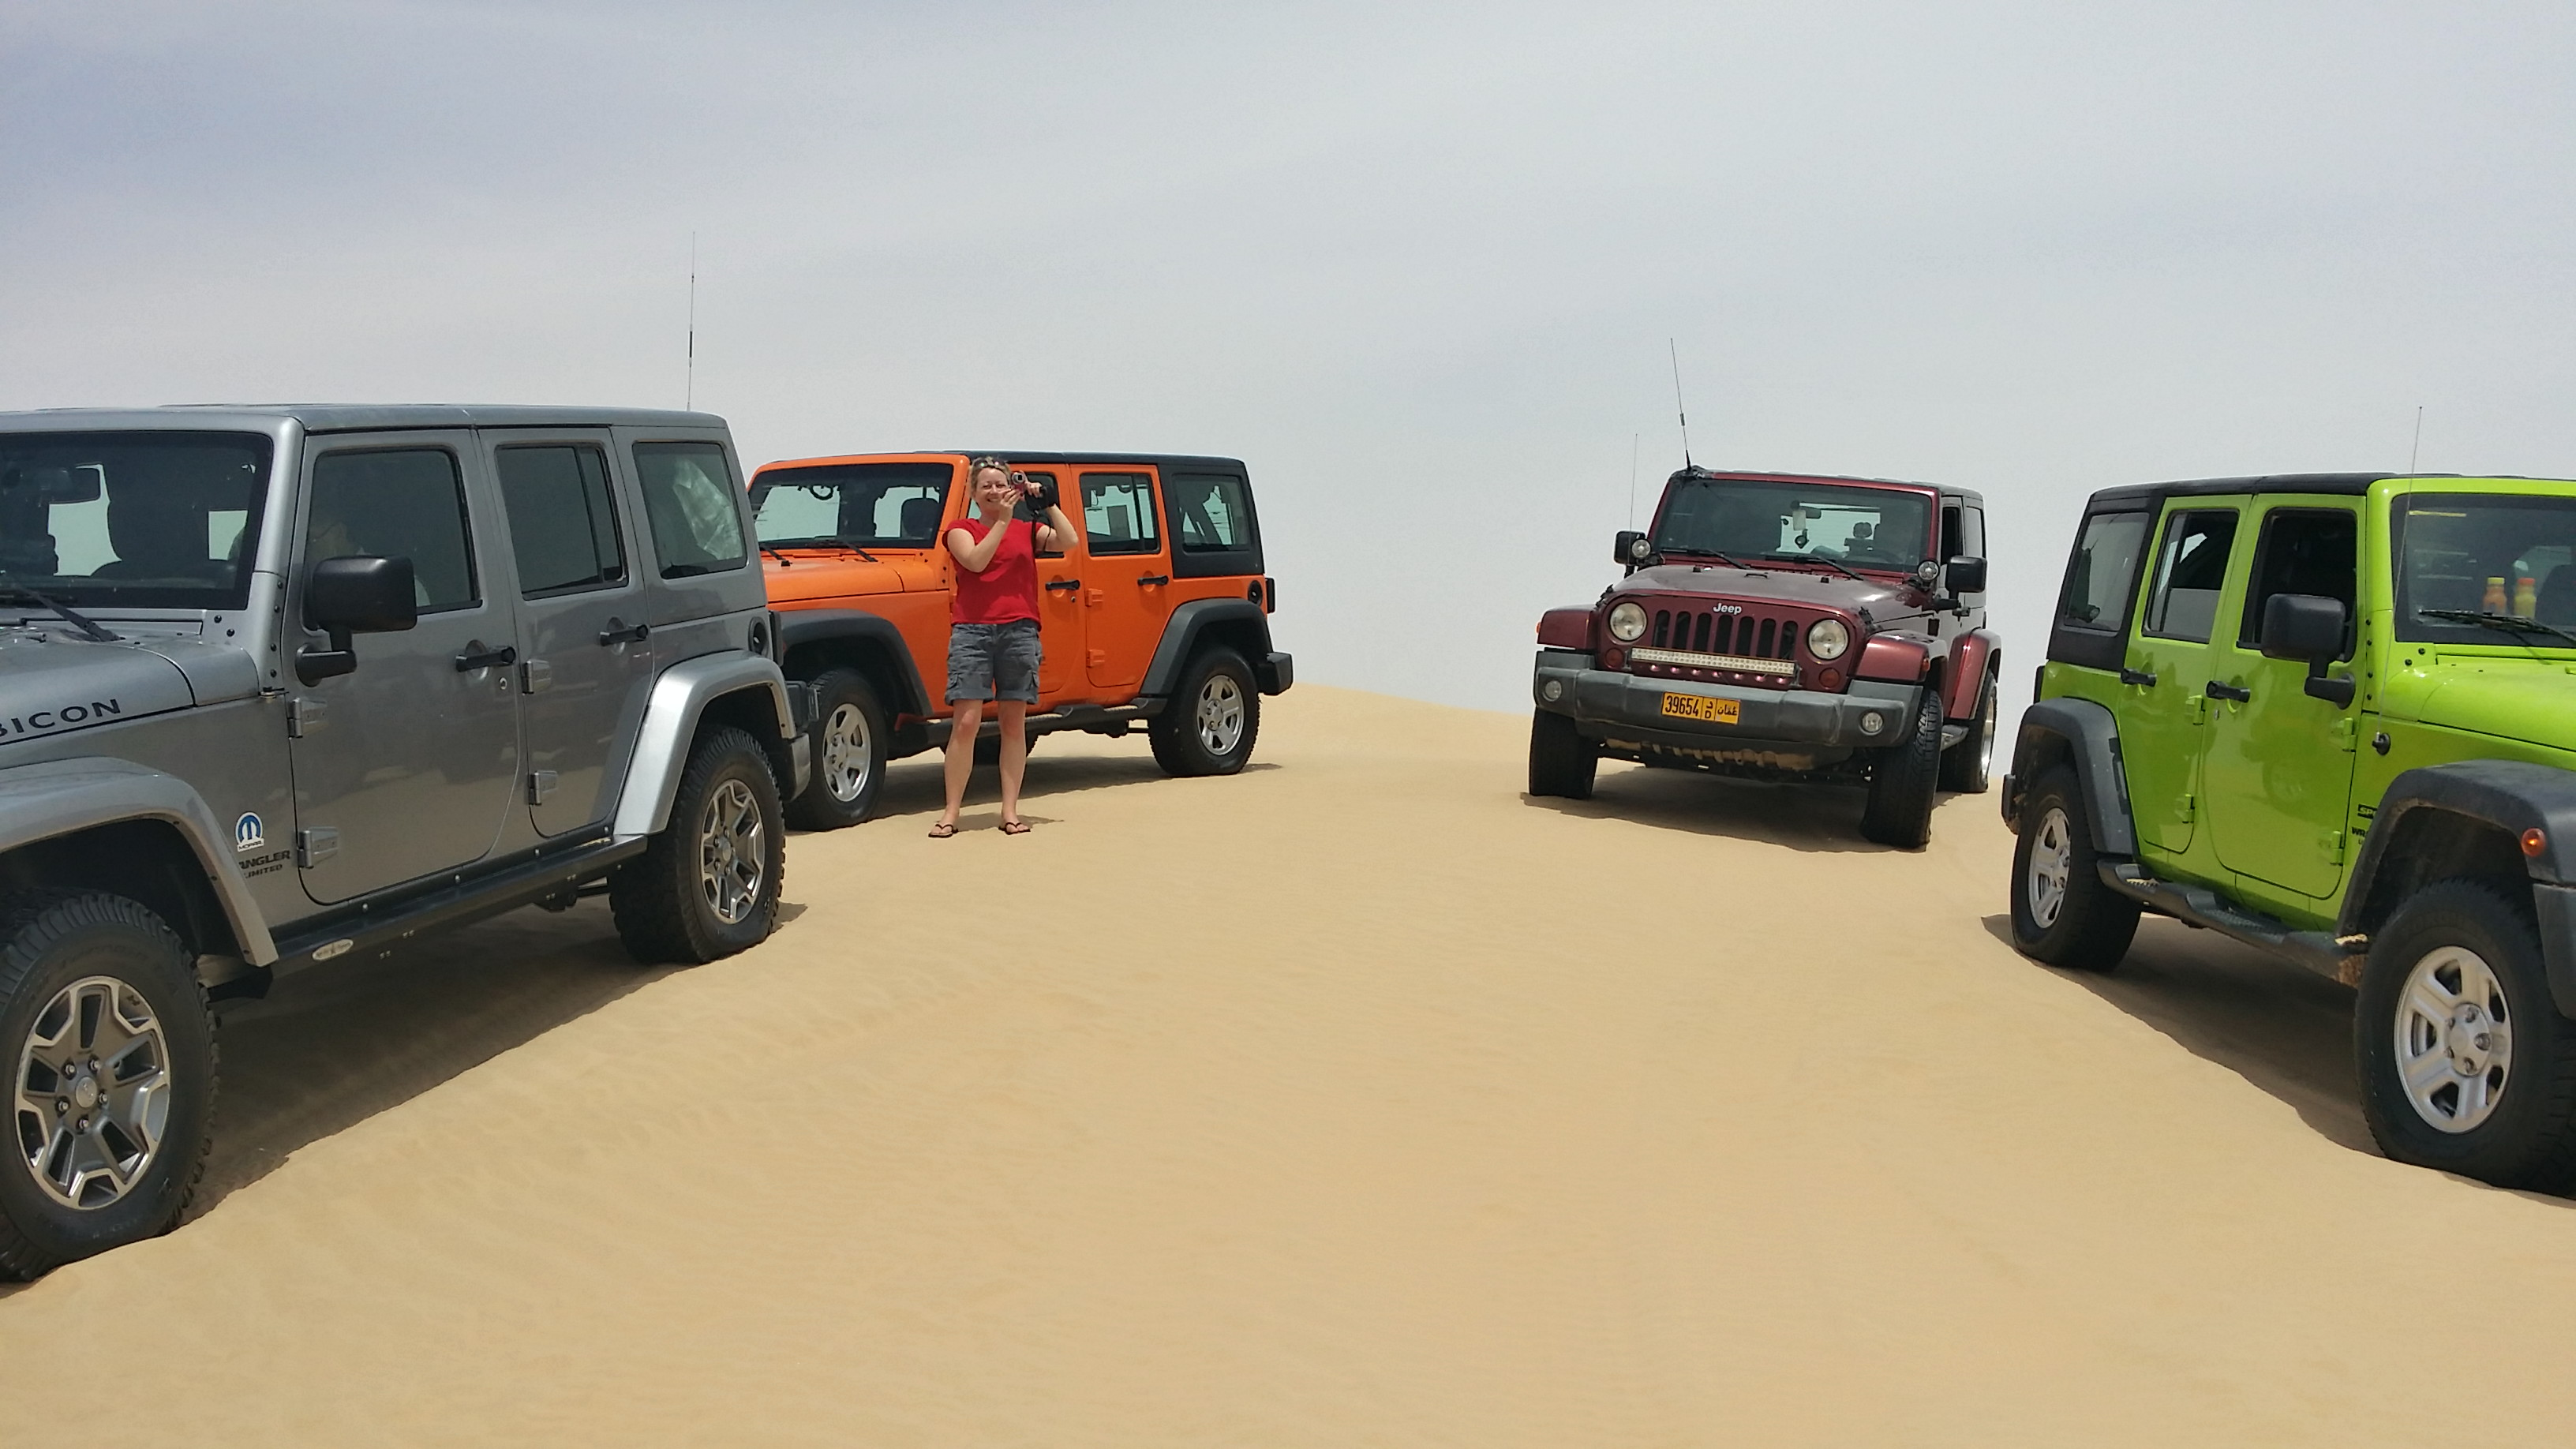 The Arctic Trucks' Off-Road Club Set to Explore Oman on Offroading Trip in December